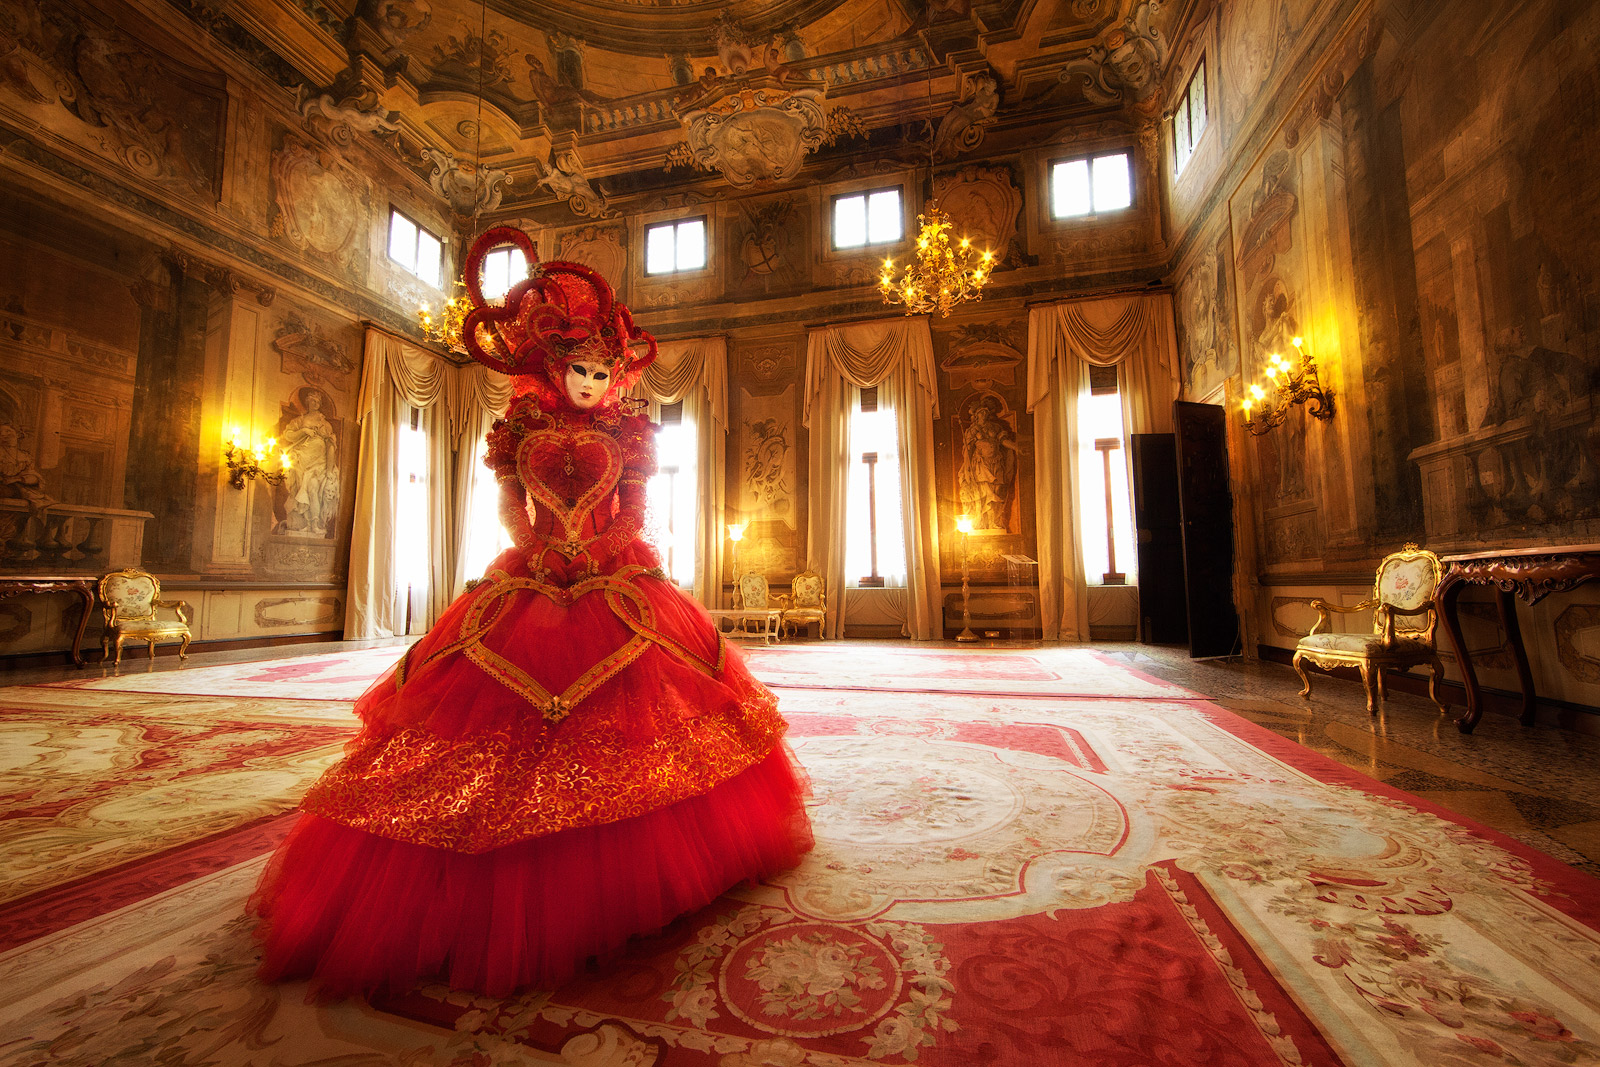 carnival, celebration, colorful, costume, europe, horizontal, italy, mask, myriam, myriam melhem, palace, party, red, venice, photo